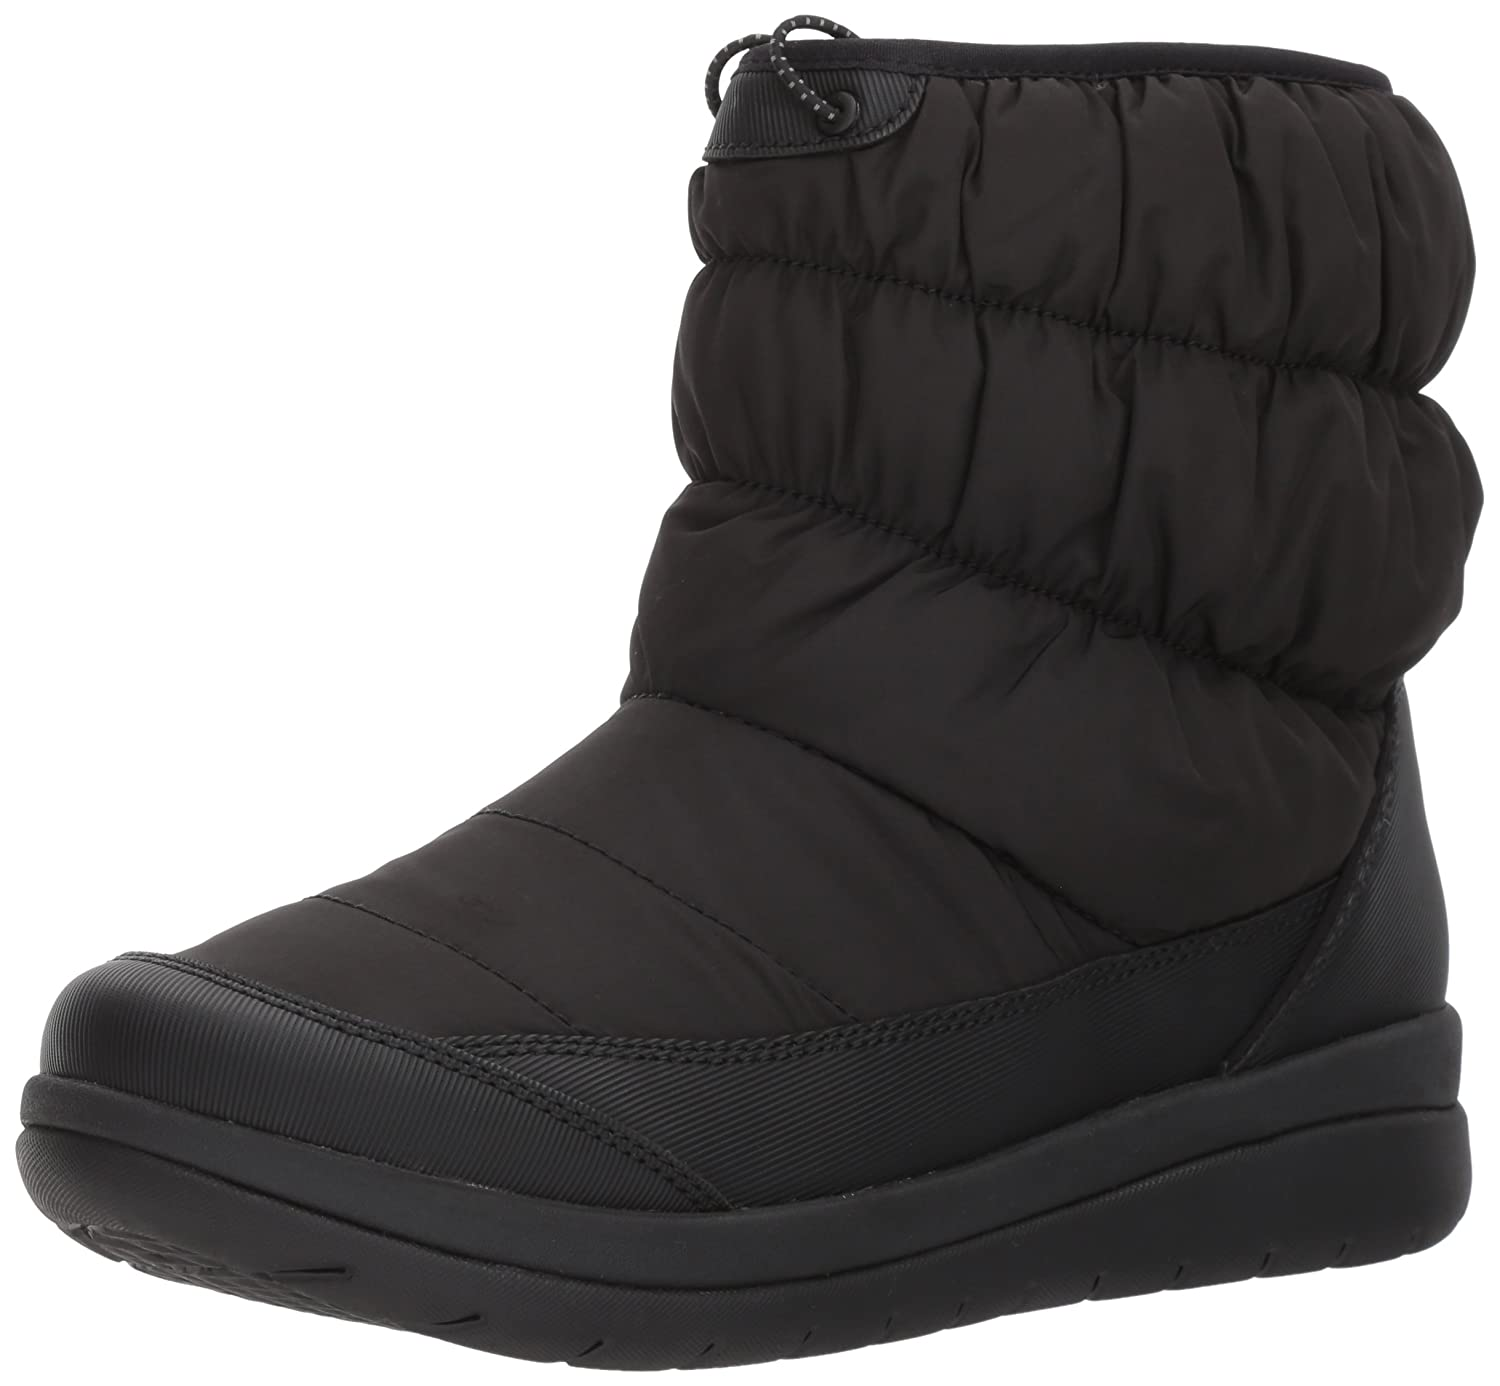 CLARKS Women's Cabrini Bay Snow Boot B01N4J5AXY 12 W US|Black